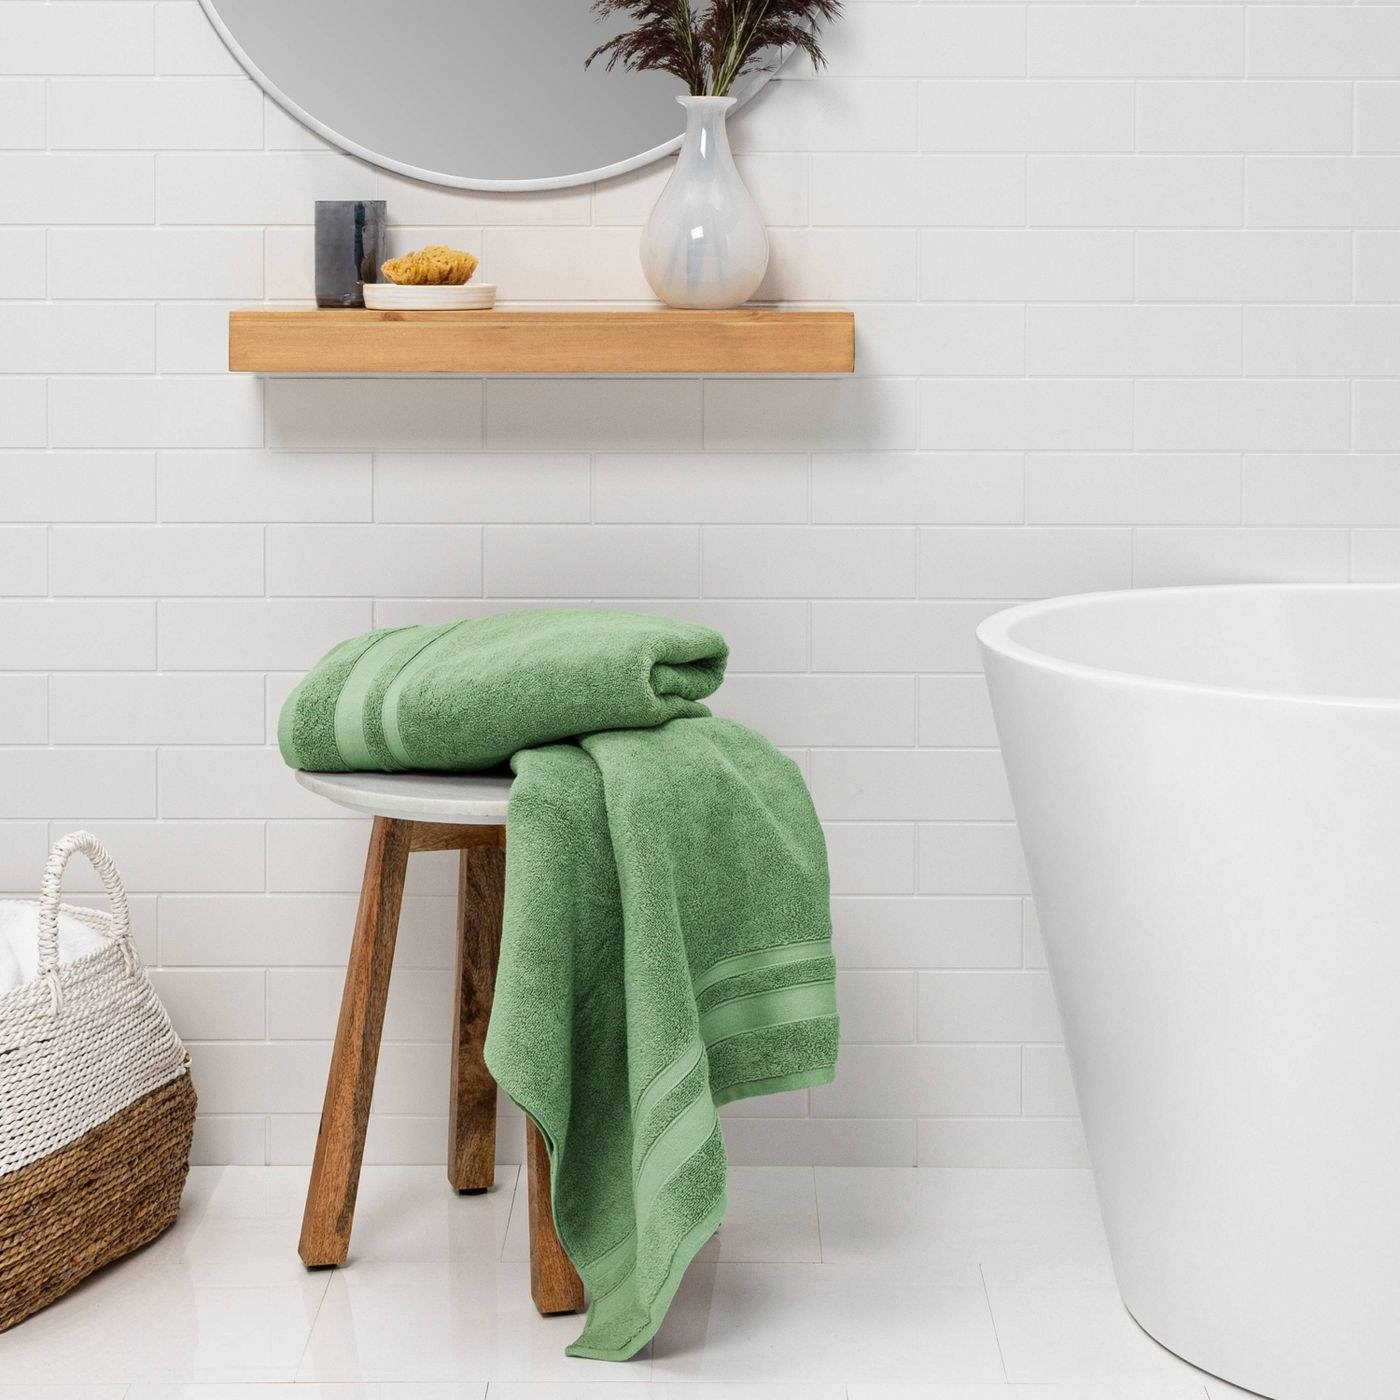 Green towels in a white bathroom